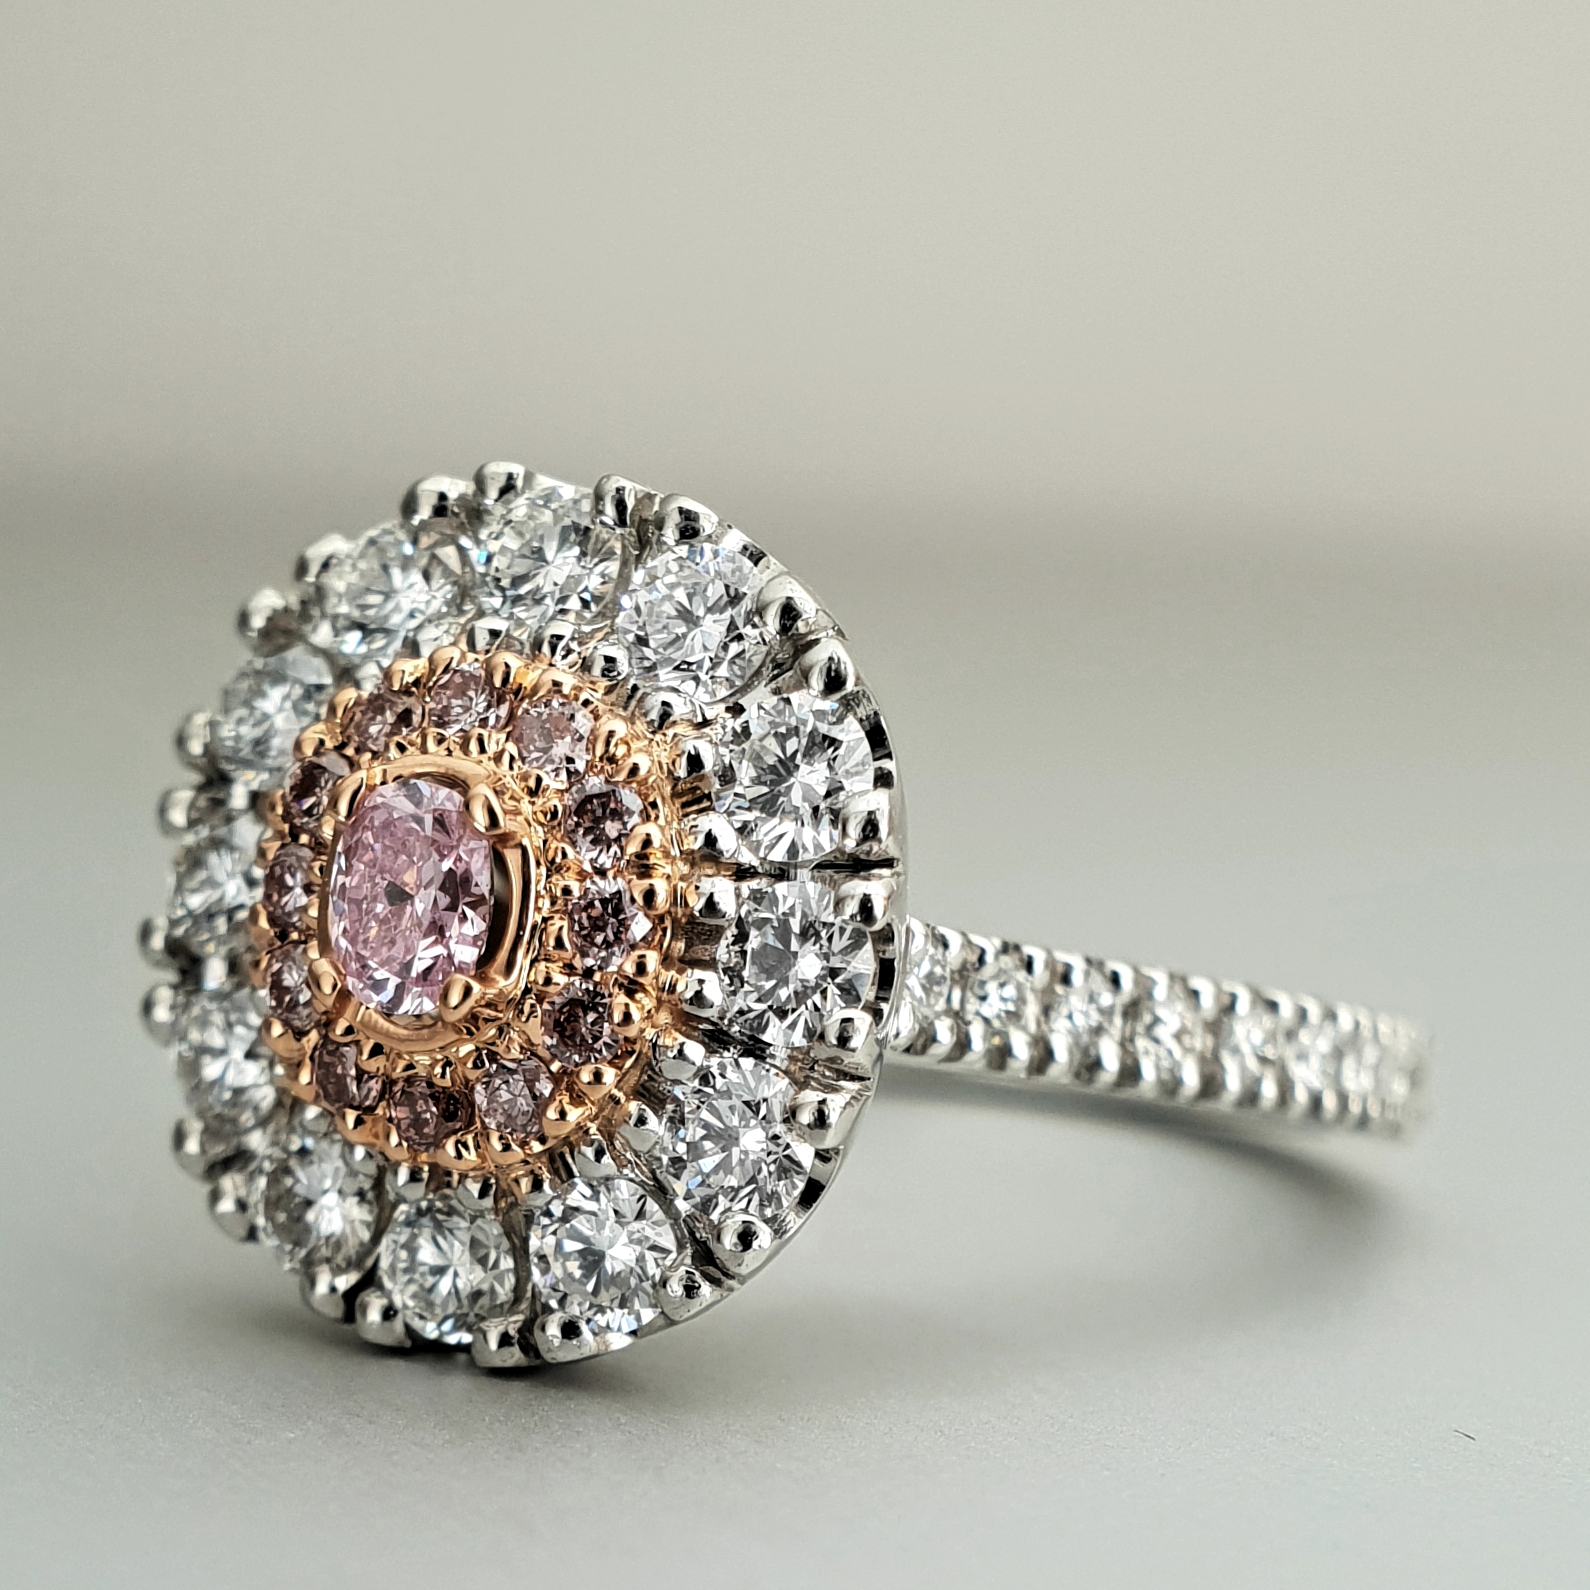 'Valentin' Pink and White Diamond Ring in Platinum and 18ct Rose Gold